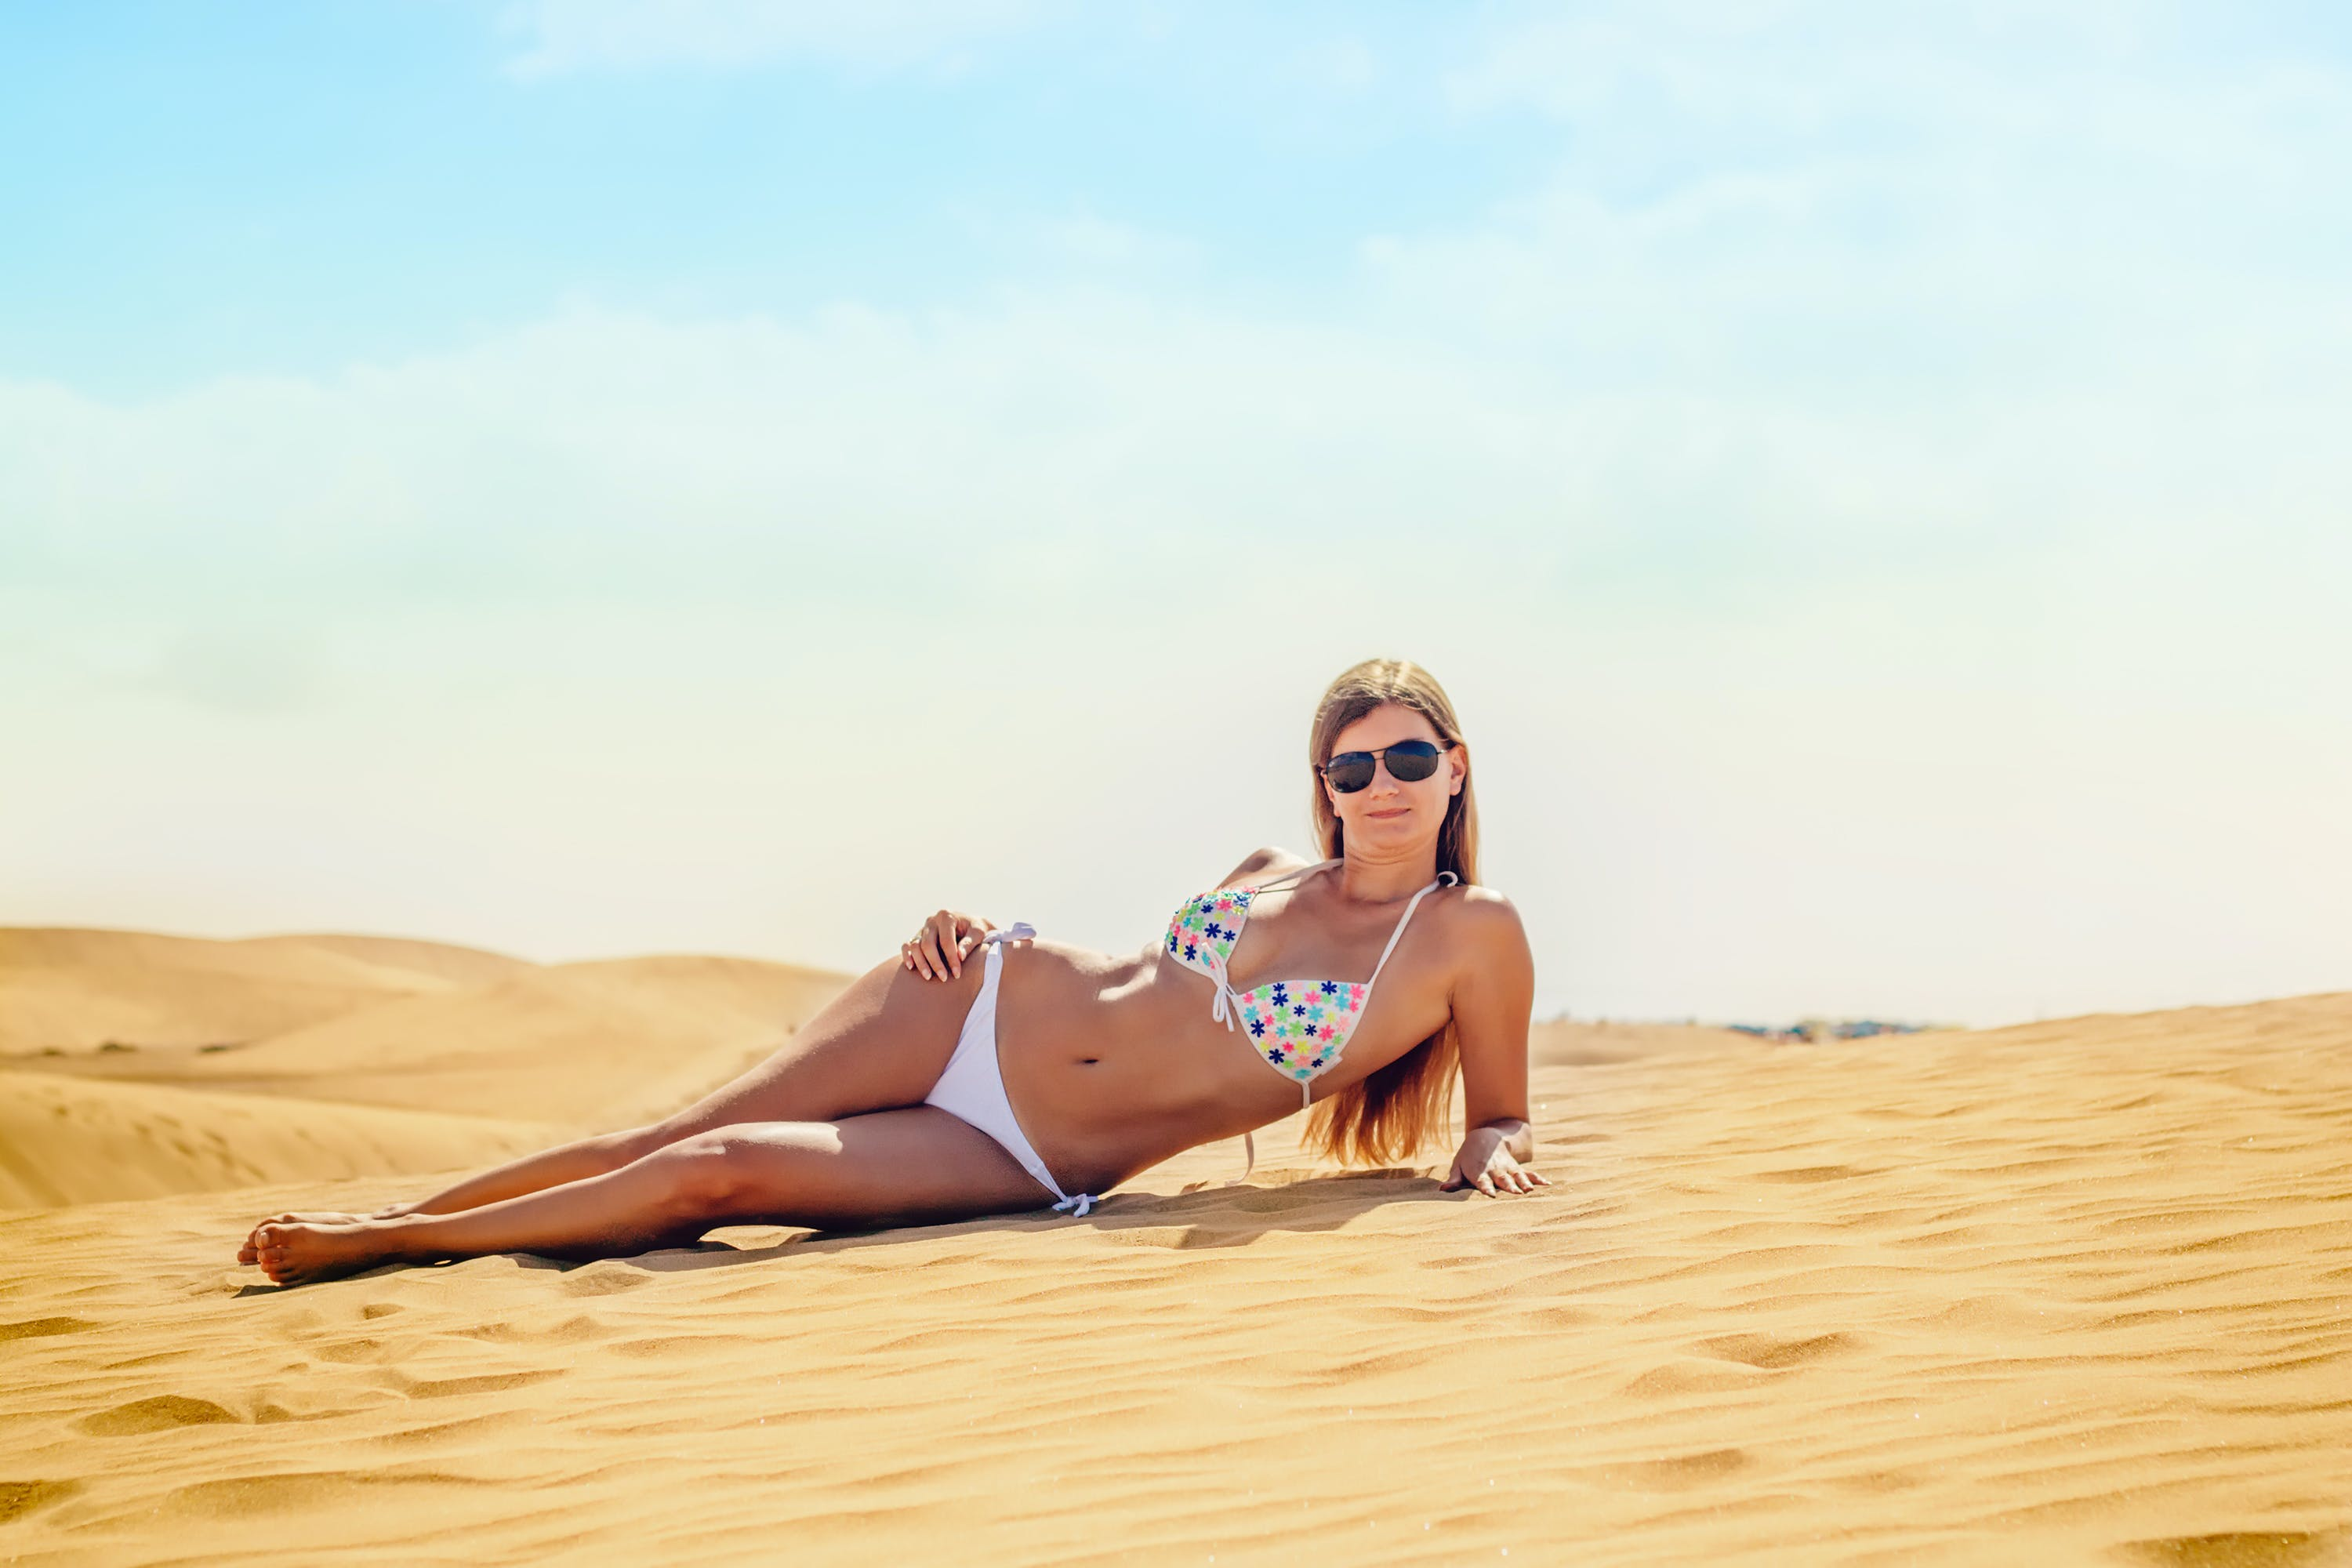 Woman Wearing Blue and White Bikini Lying on Desert